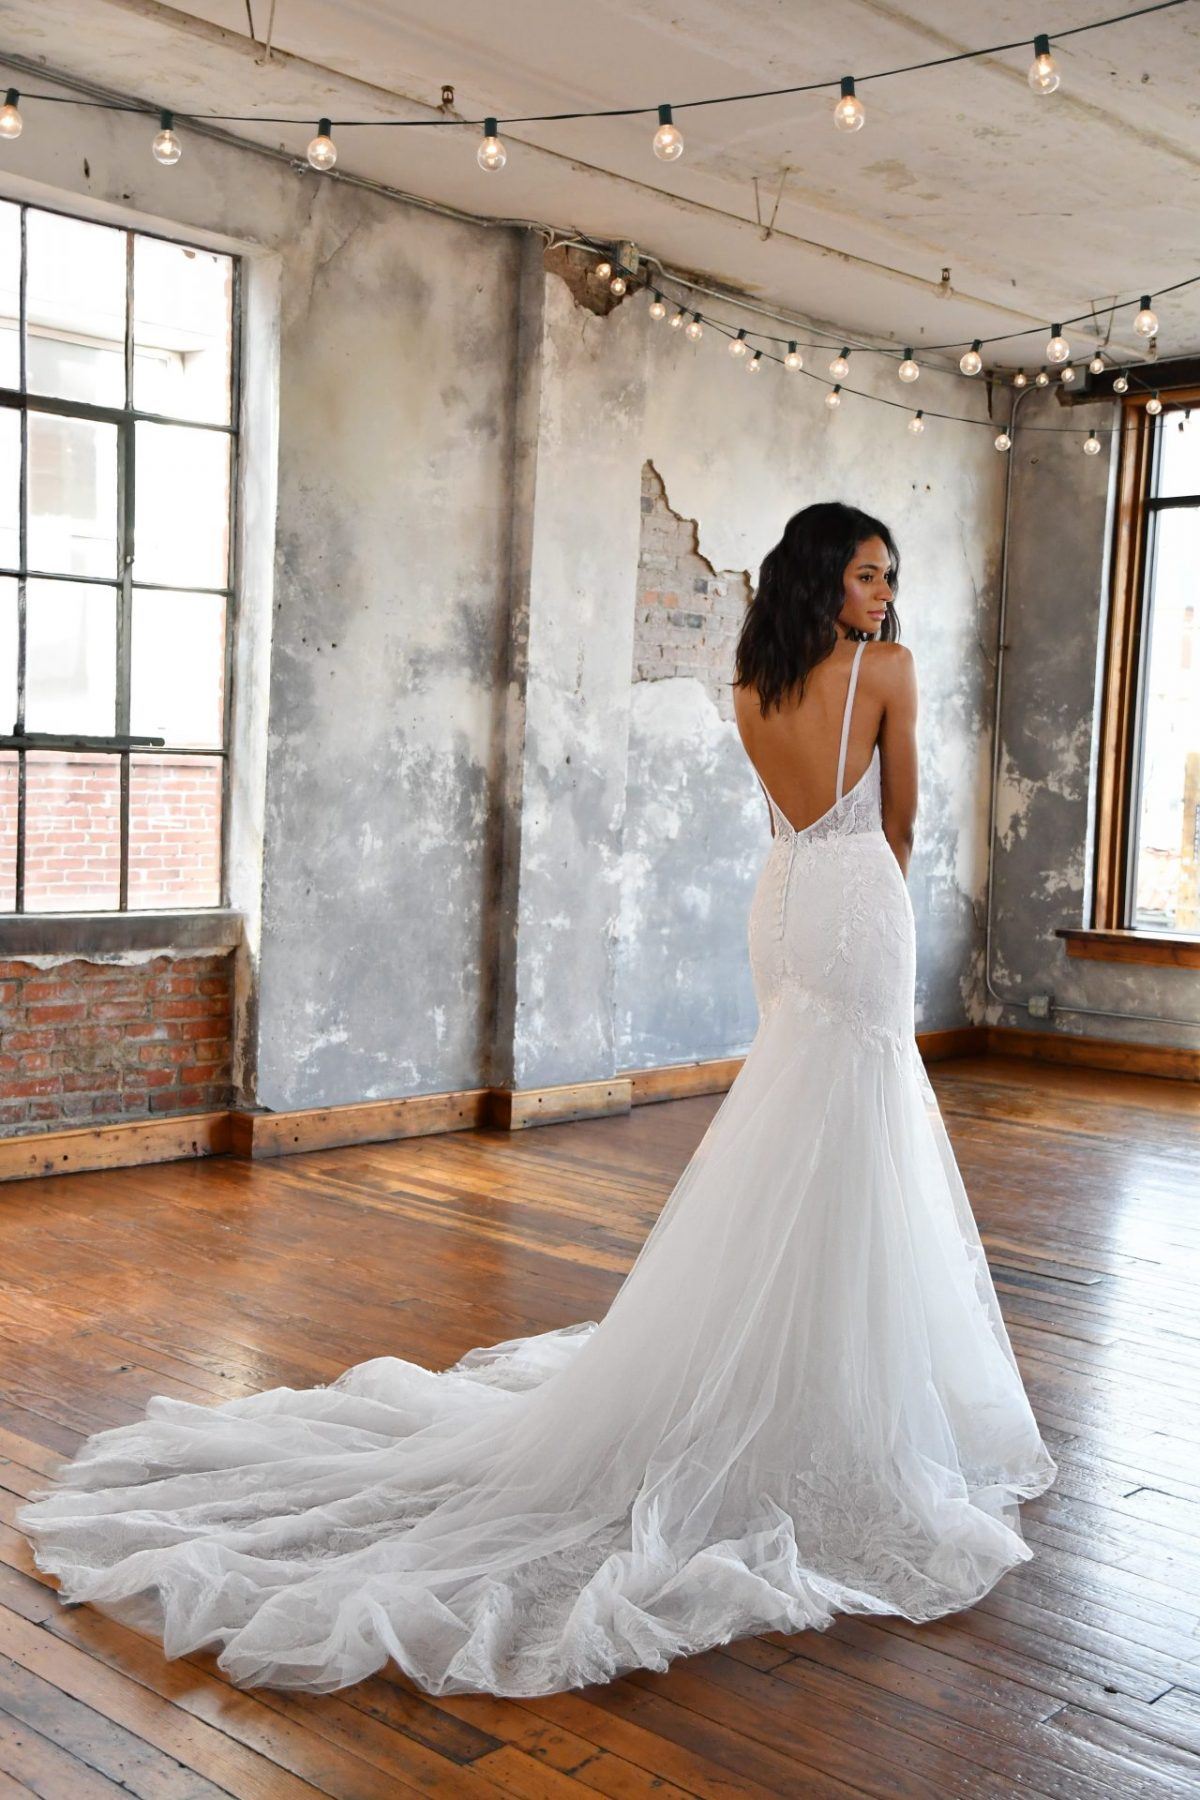 The stunning All Who wander leyla wedding dress is available from Emily Bridalwear in Sheffield, South Yorkshire.